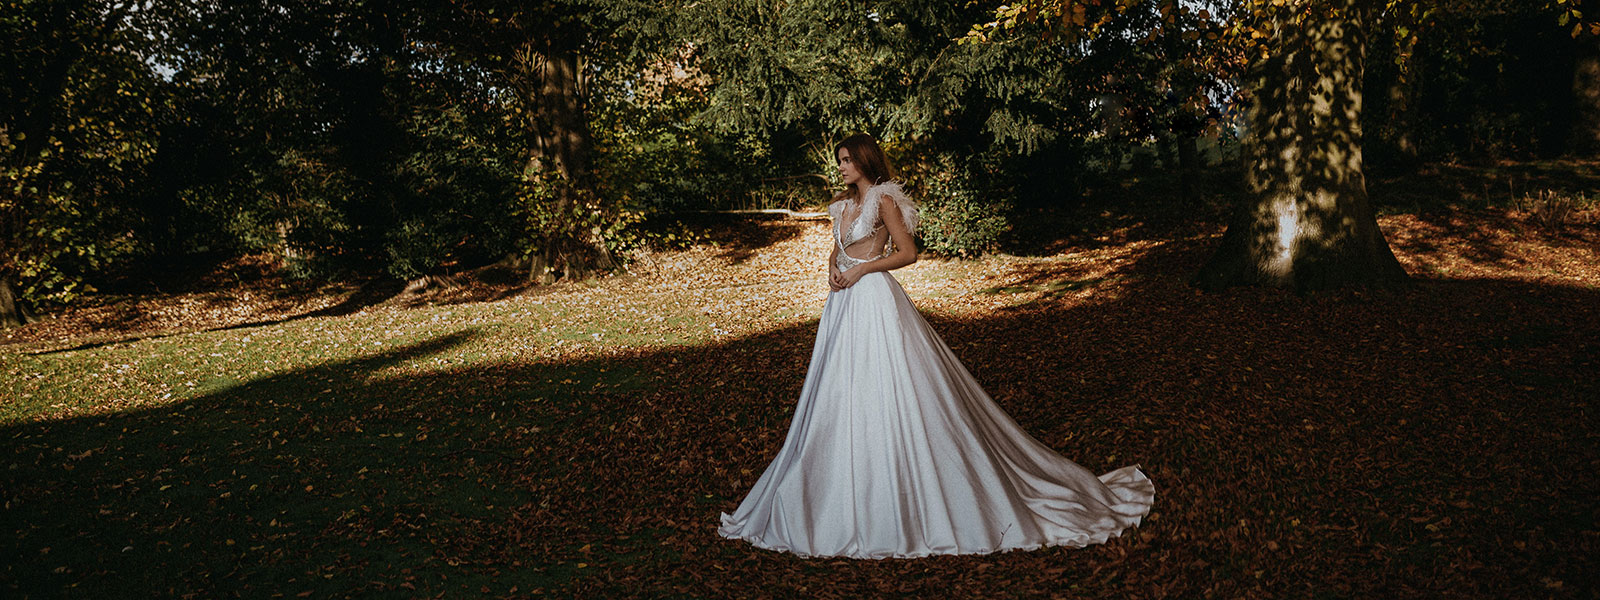 Mega Sample sale – Curated Sanyukta Shrestha Designer Bridal gowns in Midland, UK